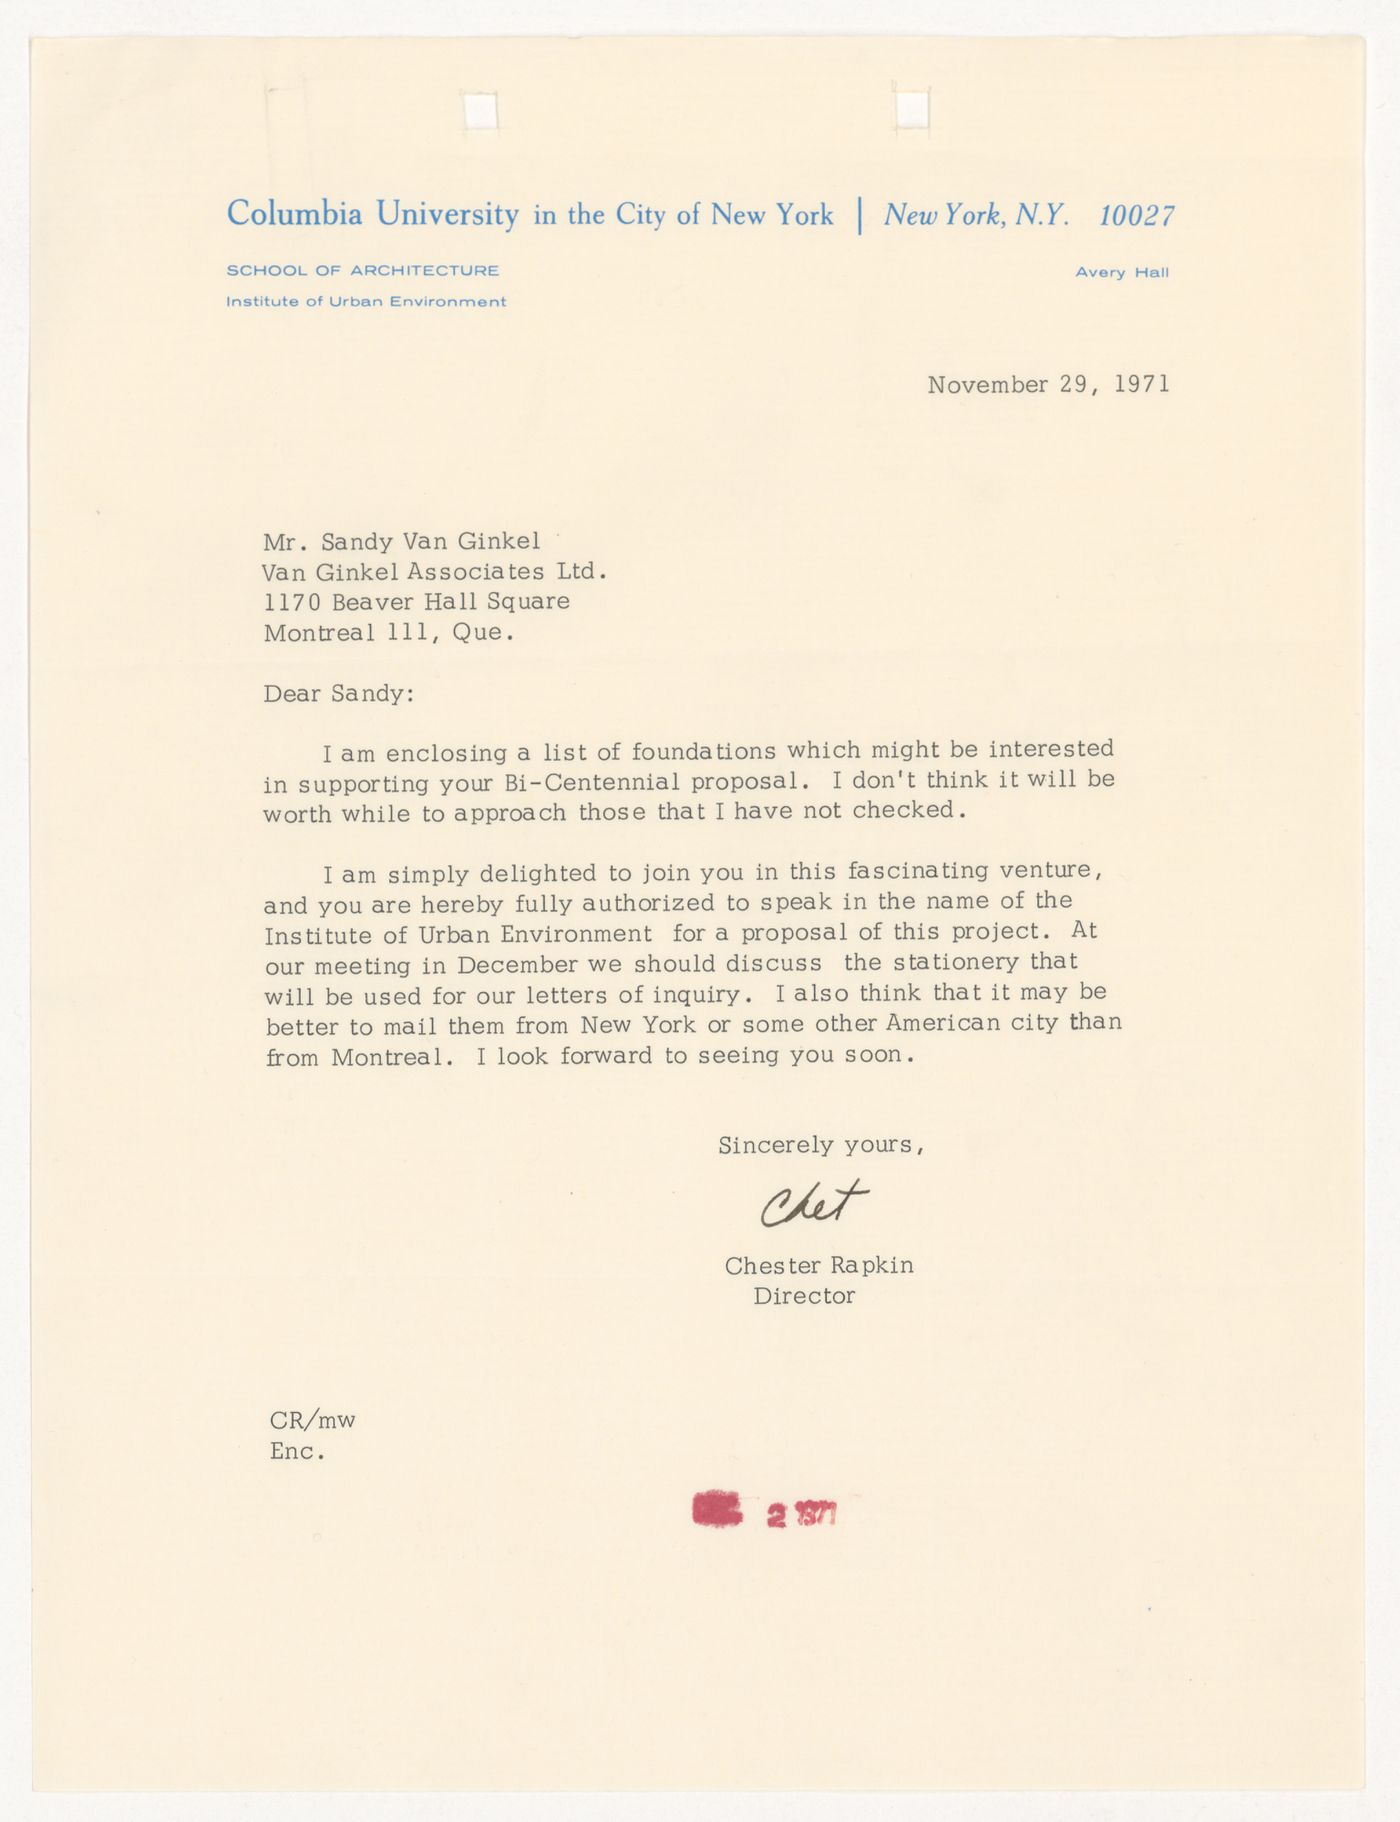 Letter from Chester Rapkin to to H. P. Daniel van Ginkel for United States One (U.S. 1)